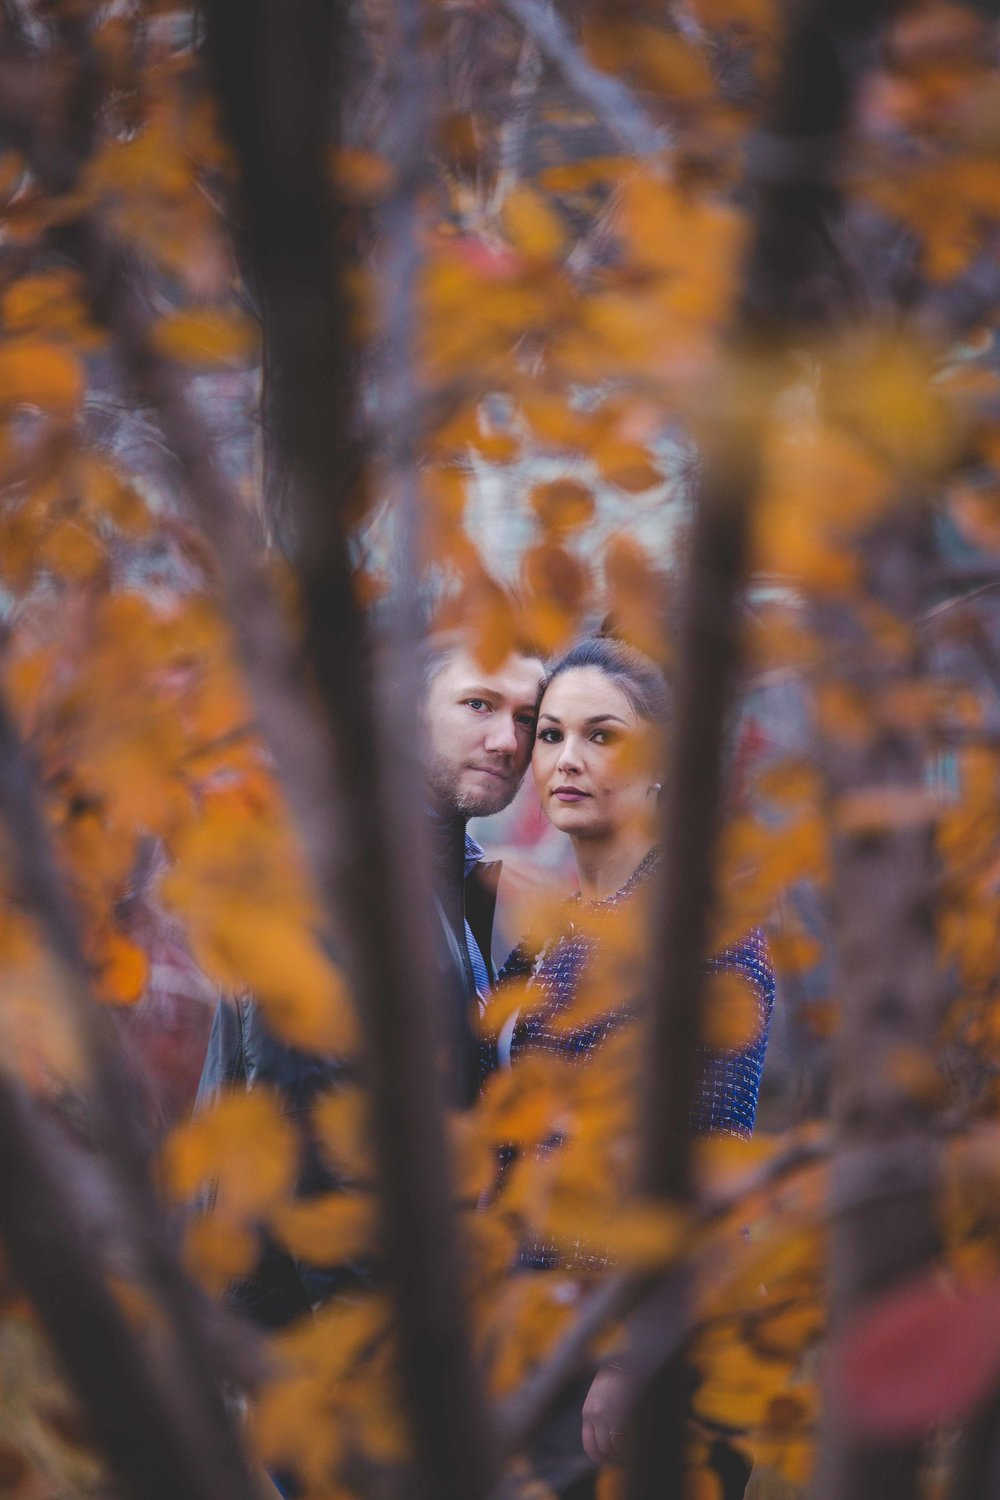 engagement-photographer-NYC-best-photography-14.jpg